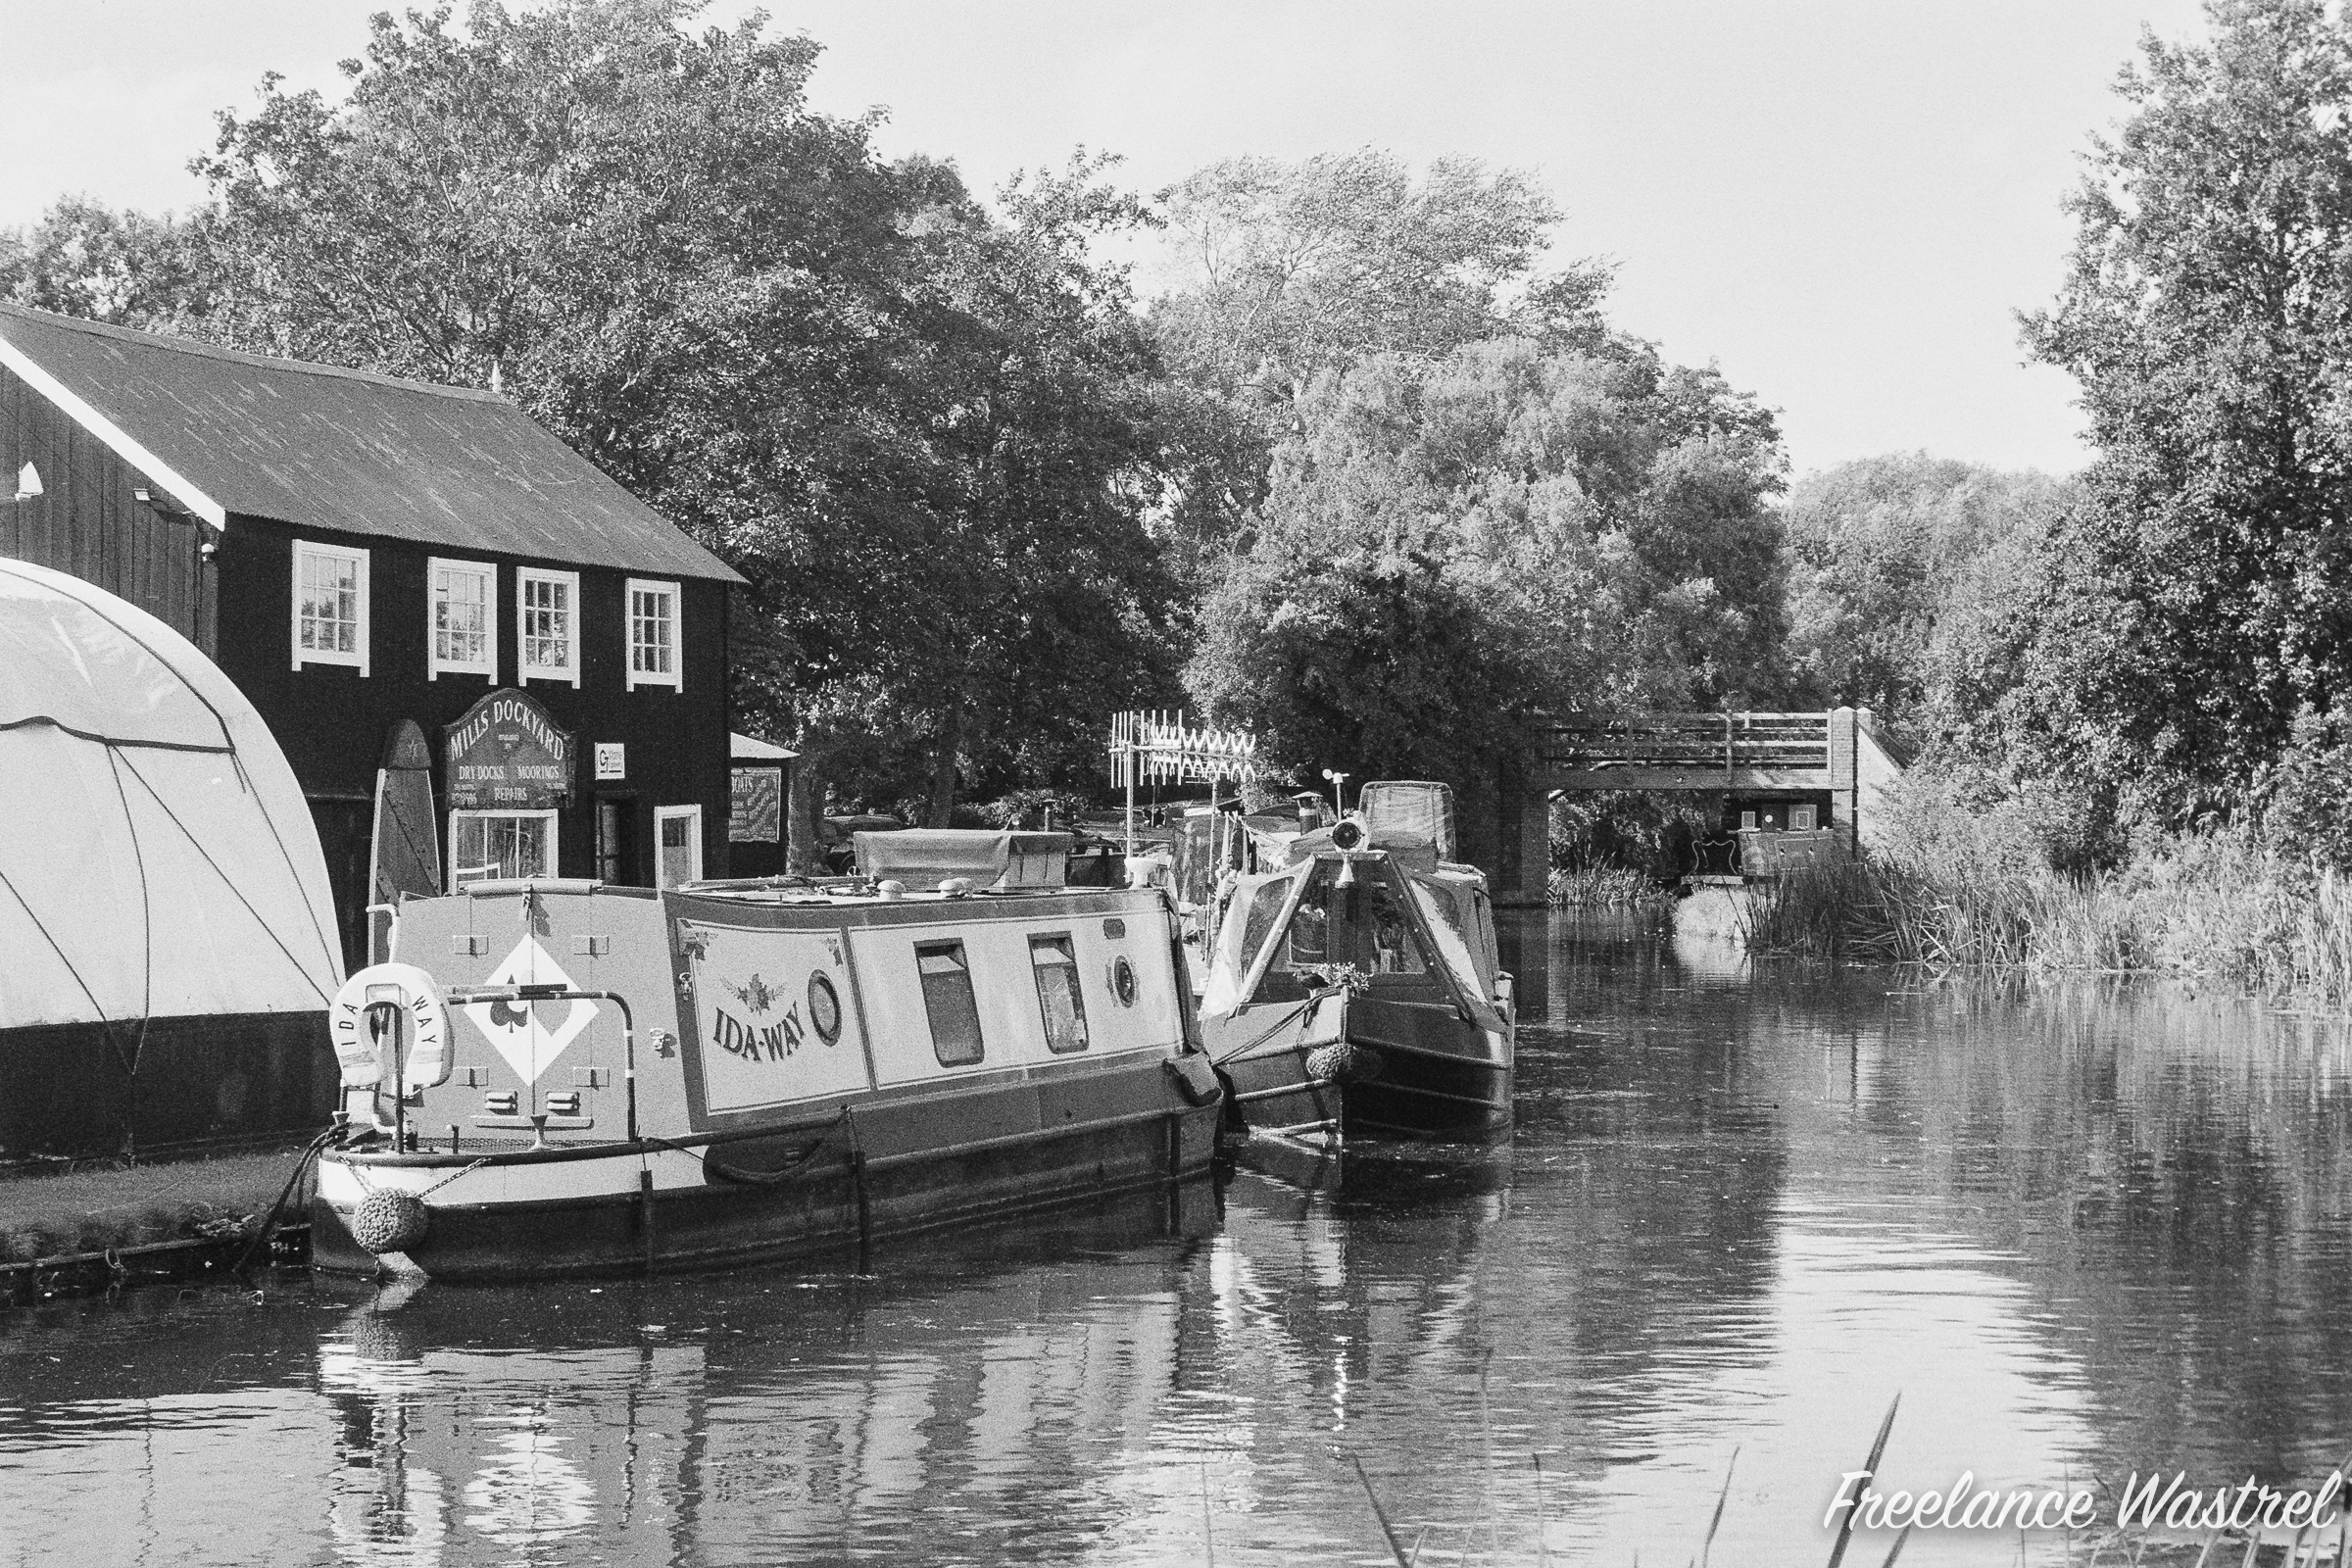 IDA-WAY, Erewash Canal, September 2020